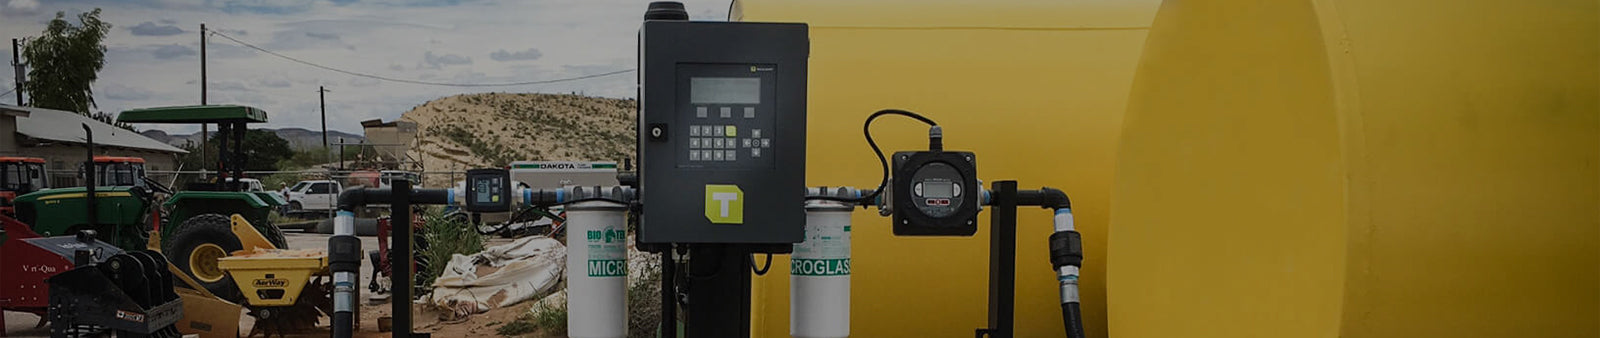 Tecalemit Fuel Management System